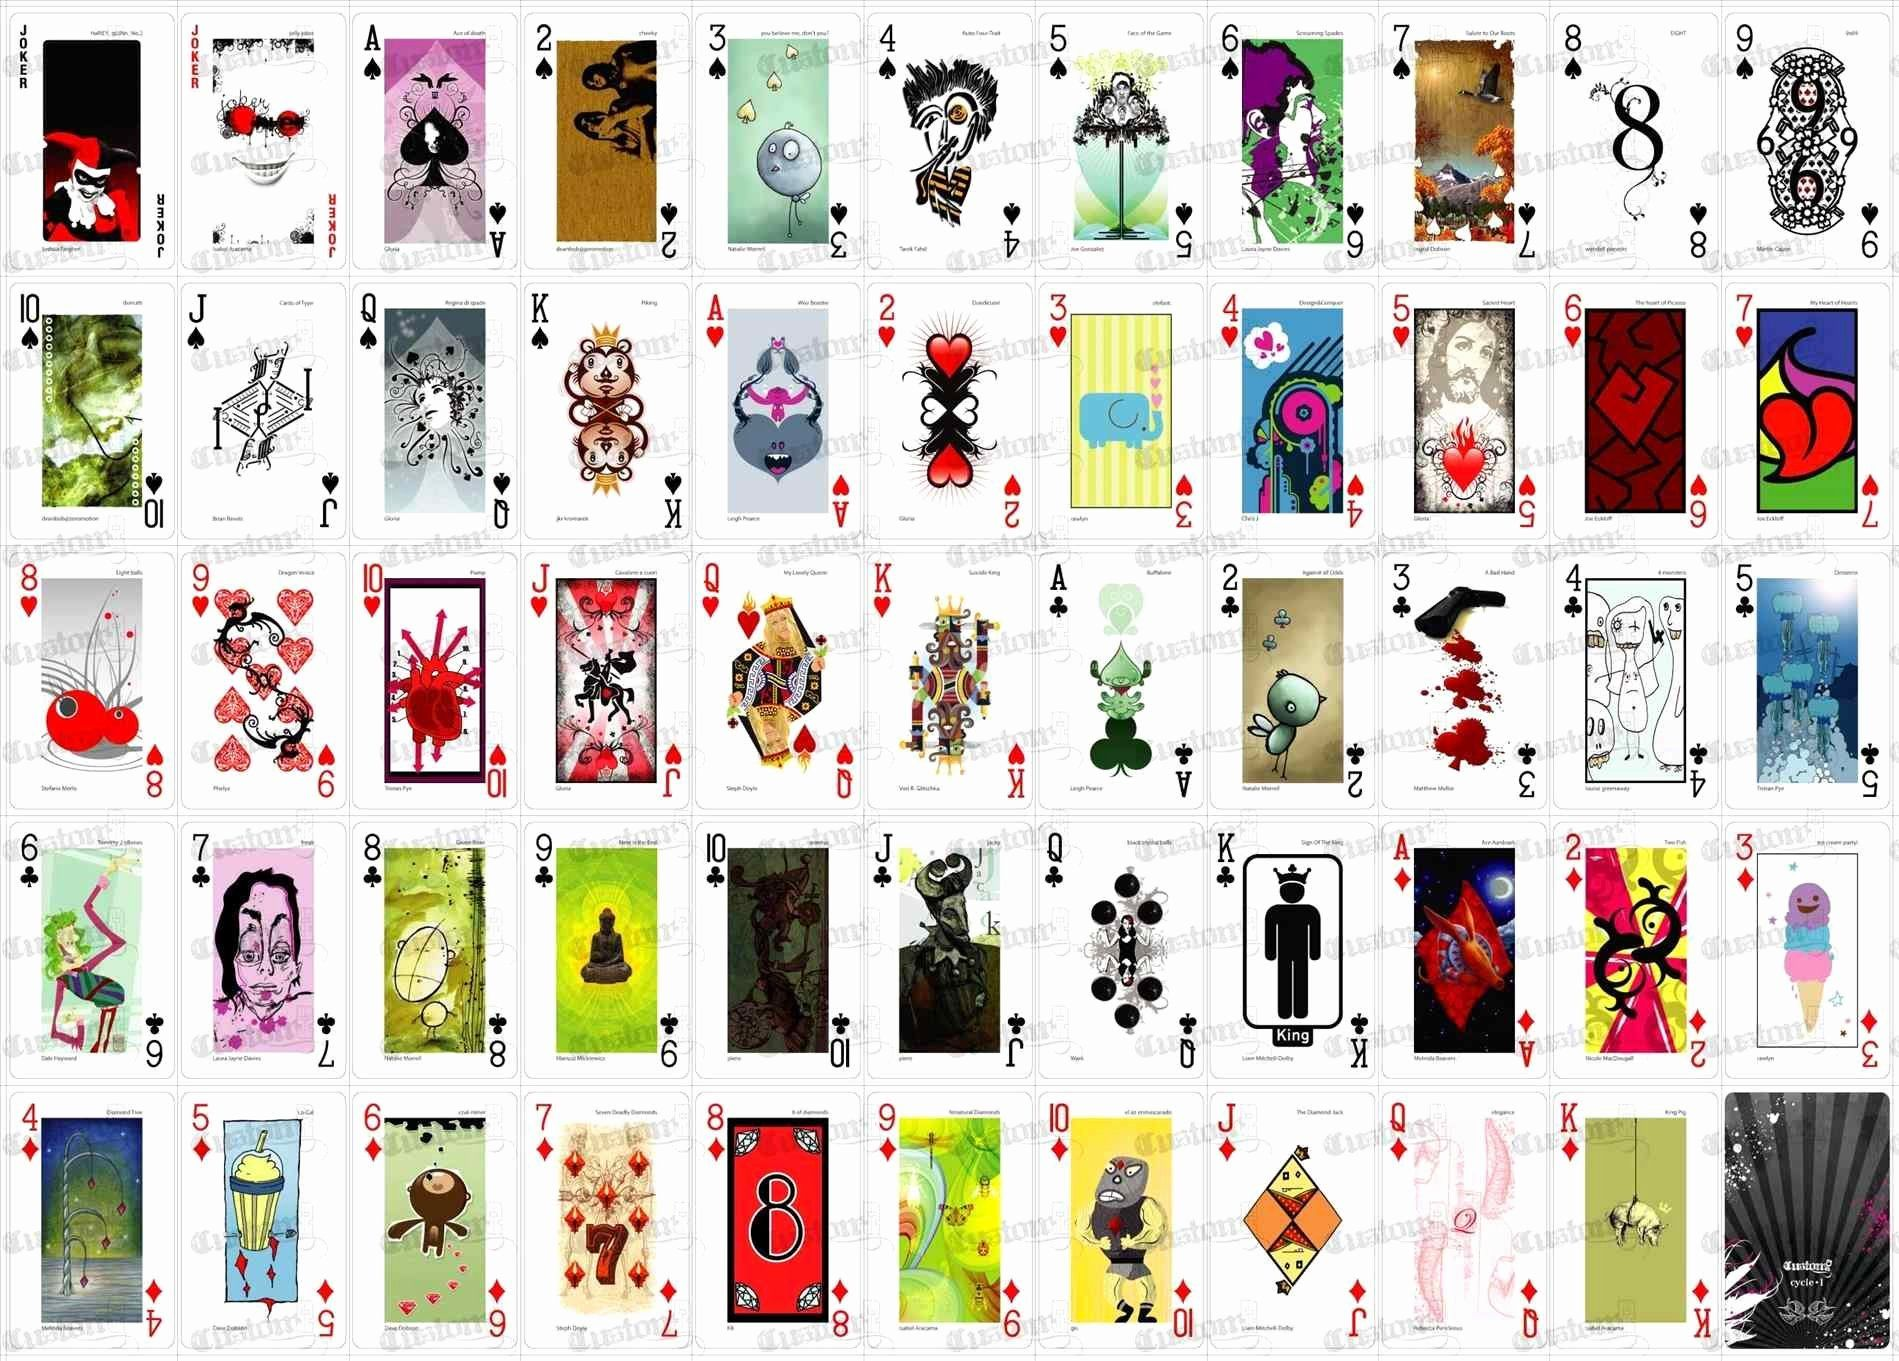 Playing Card Design Template Elegant Cool Card Deck Designs Arch Dsgn Card Design Playing Cards Design Custom Playing Cards